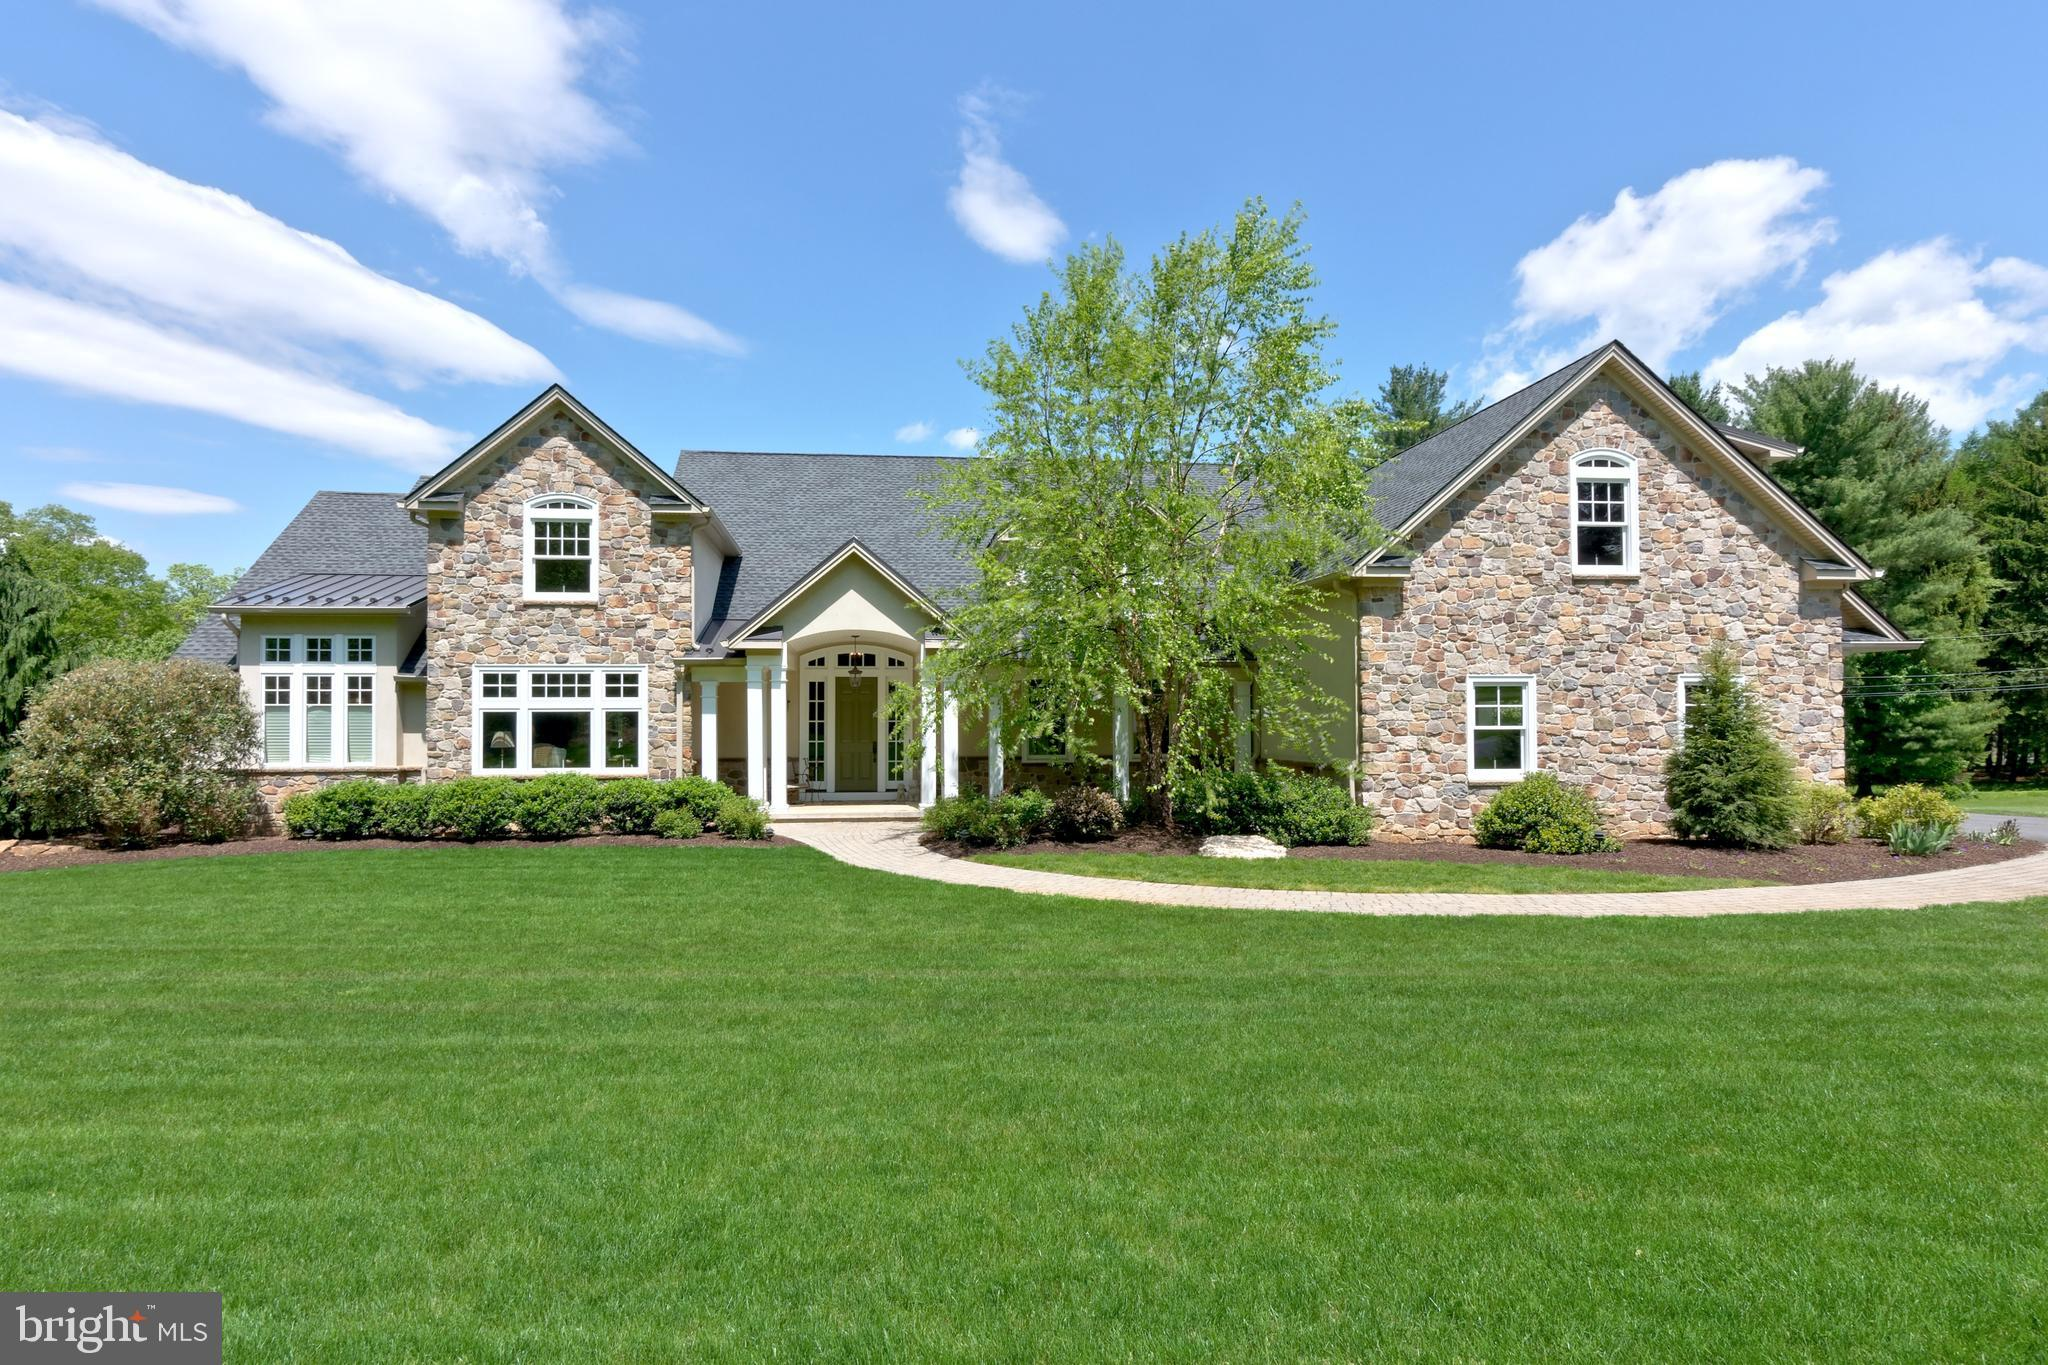 140 S BUTTONWOOD STREET, MACUNGIE, PA 18062